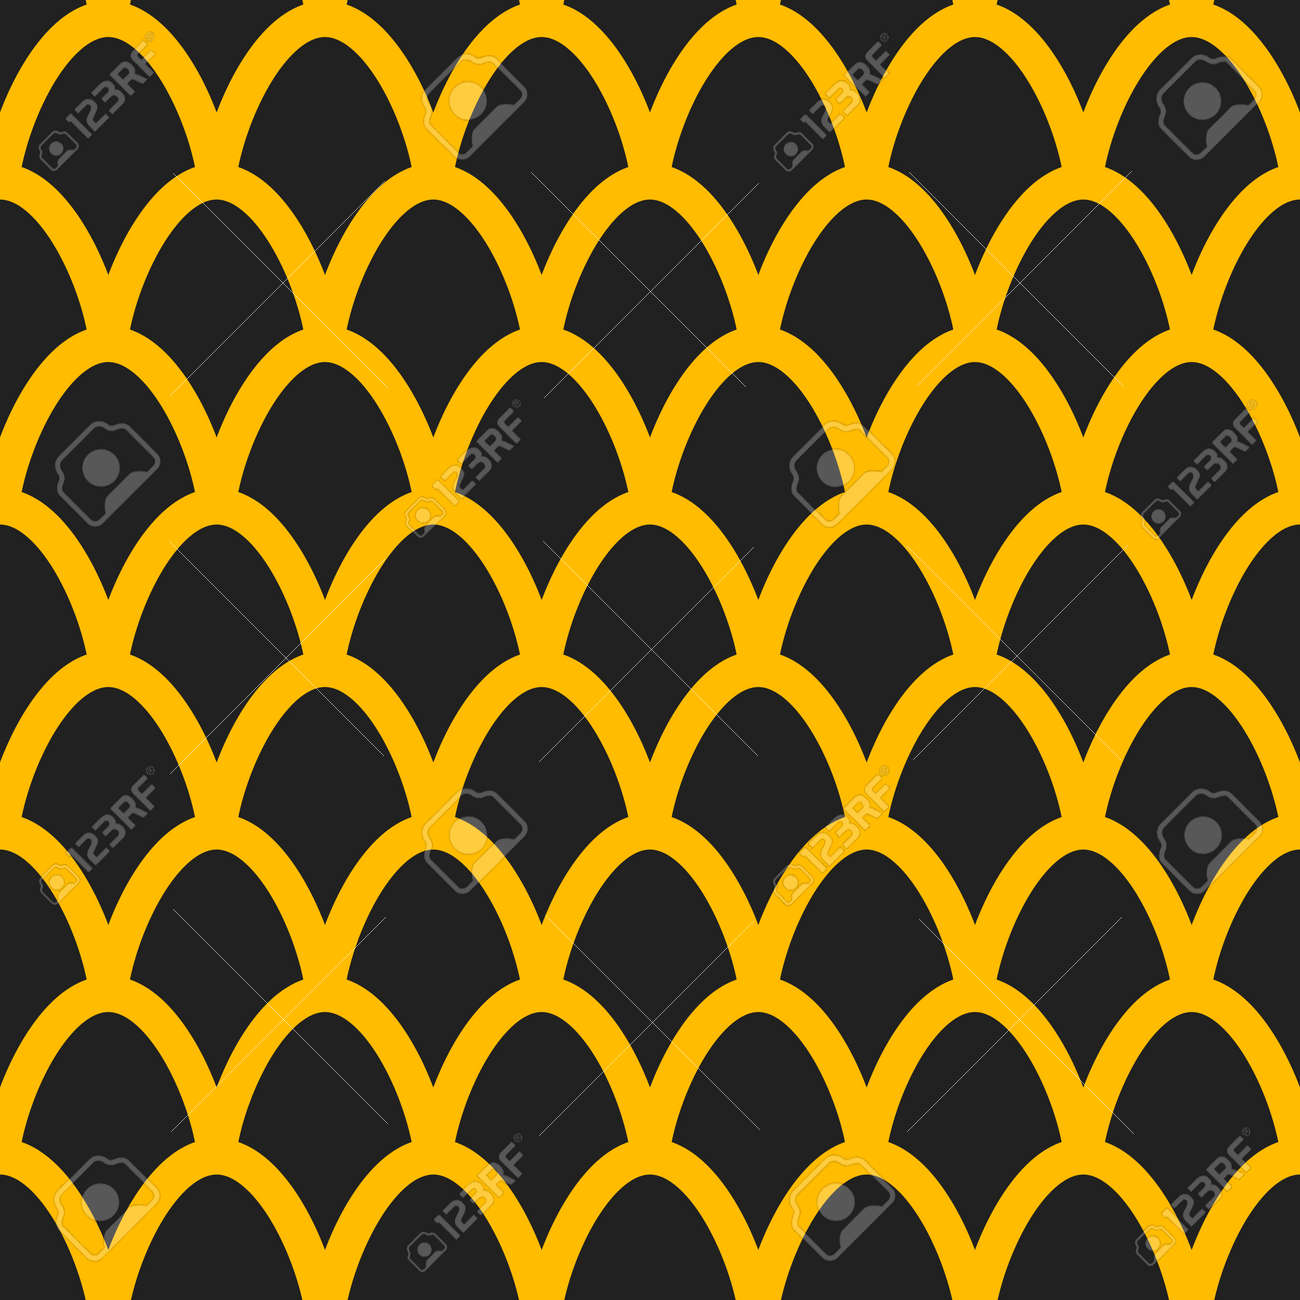 Fish scales seamless pattern. Mermaid tail background - 167305253